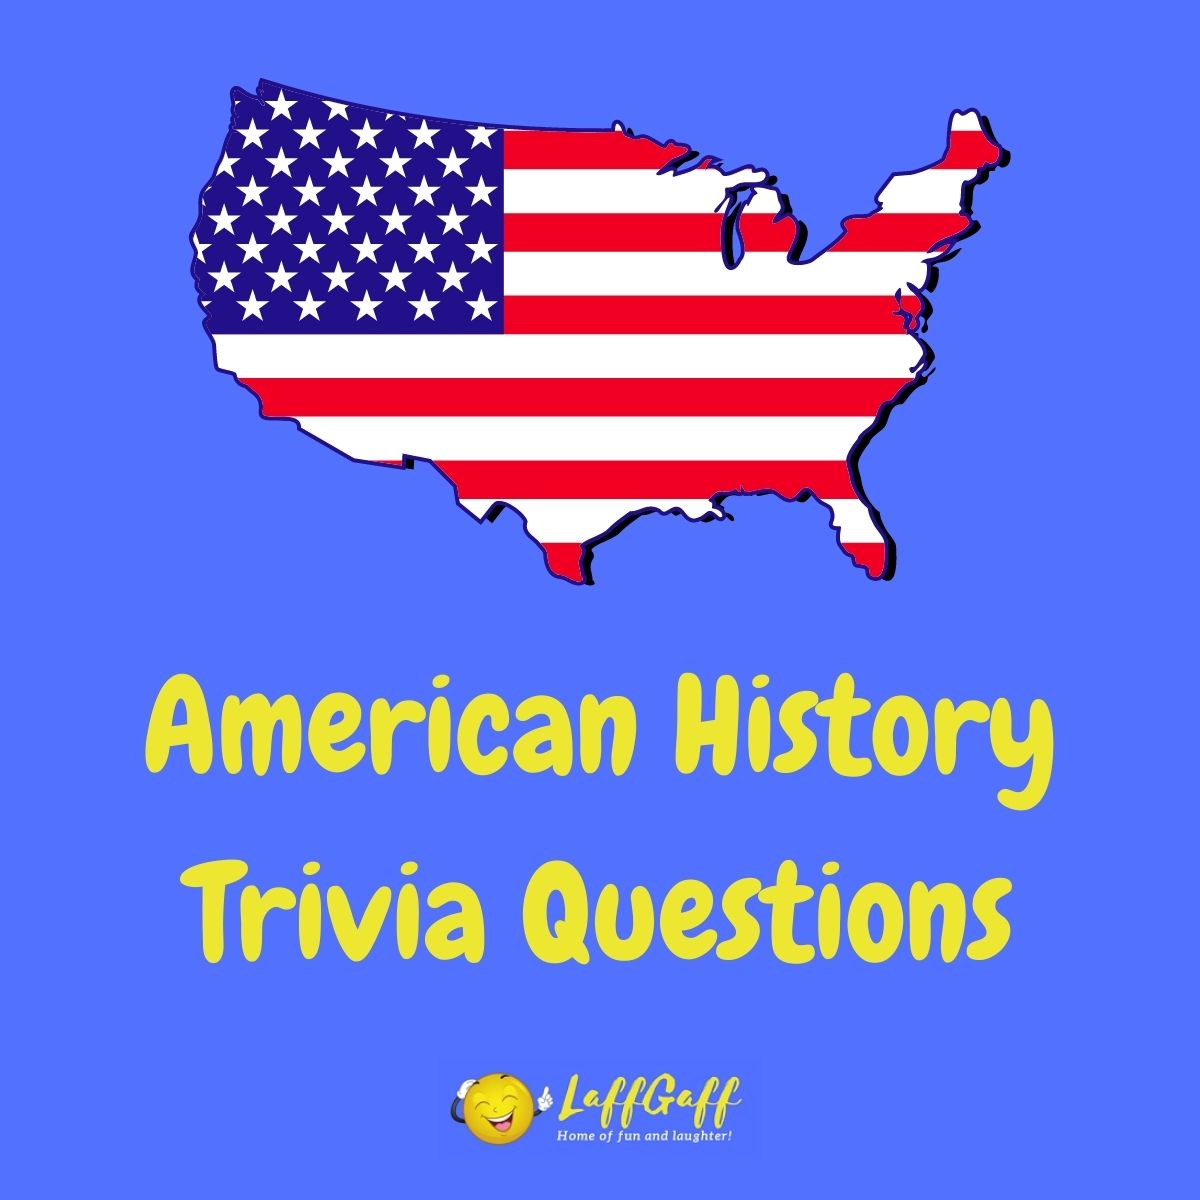 Featured image for a page of American history trivia questions and answers.